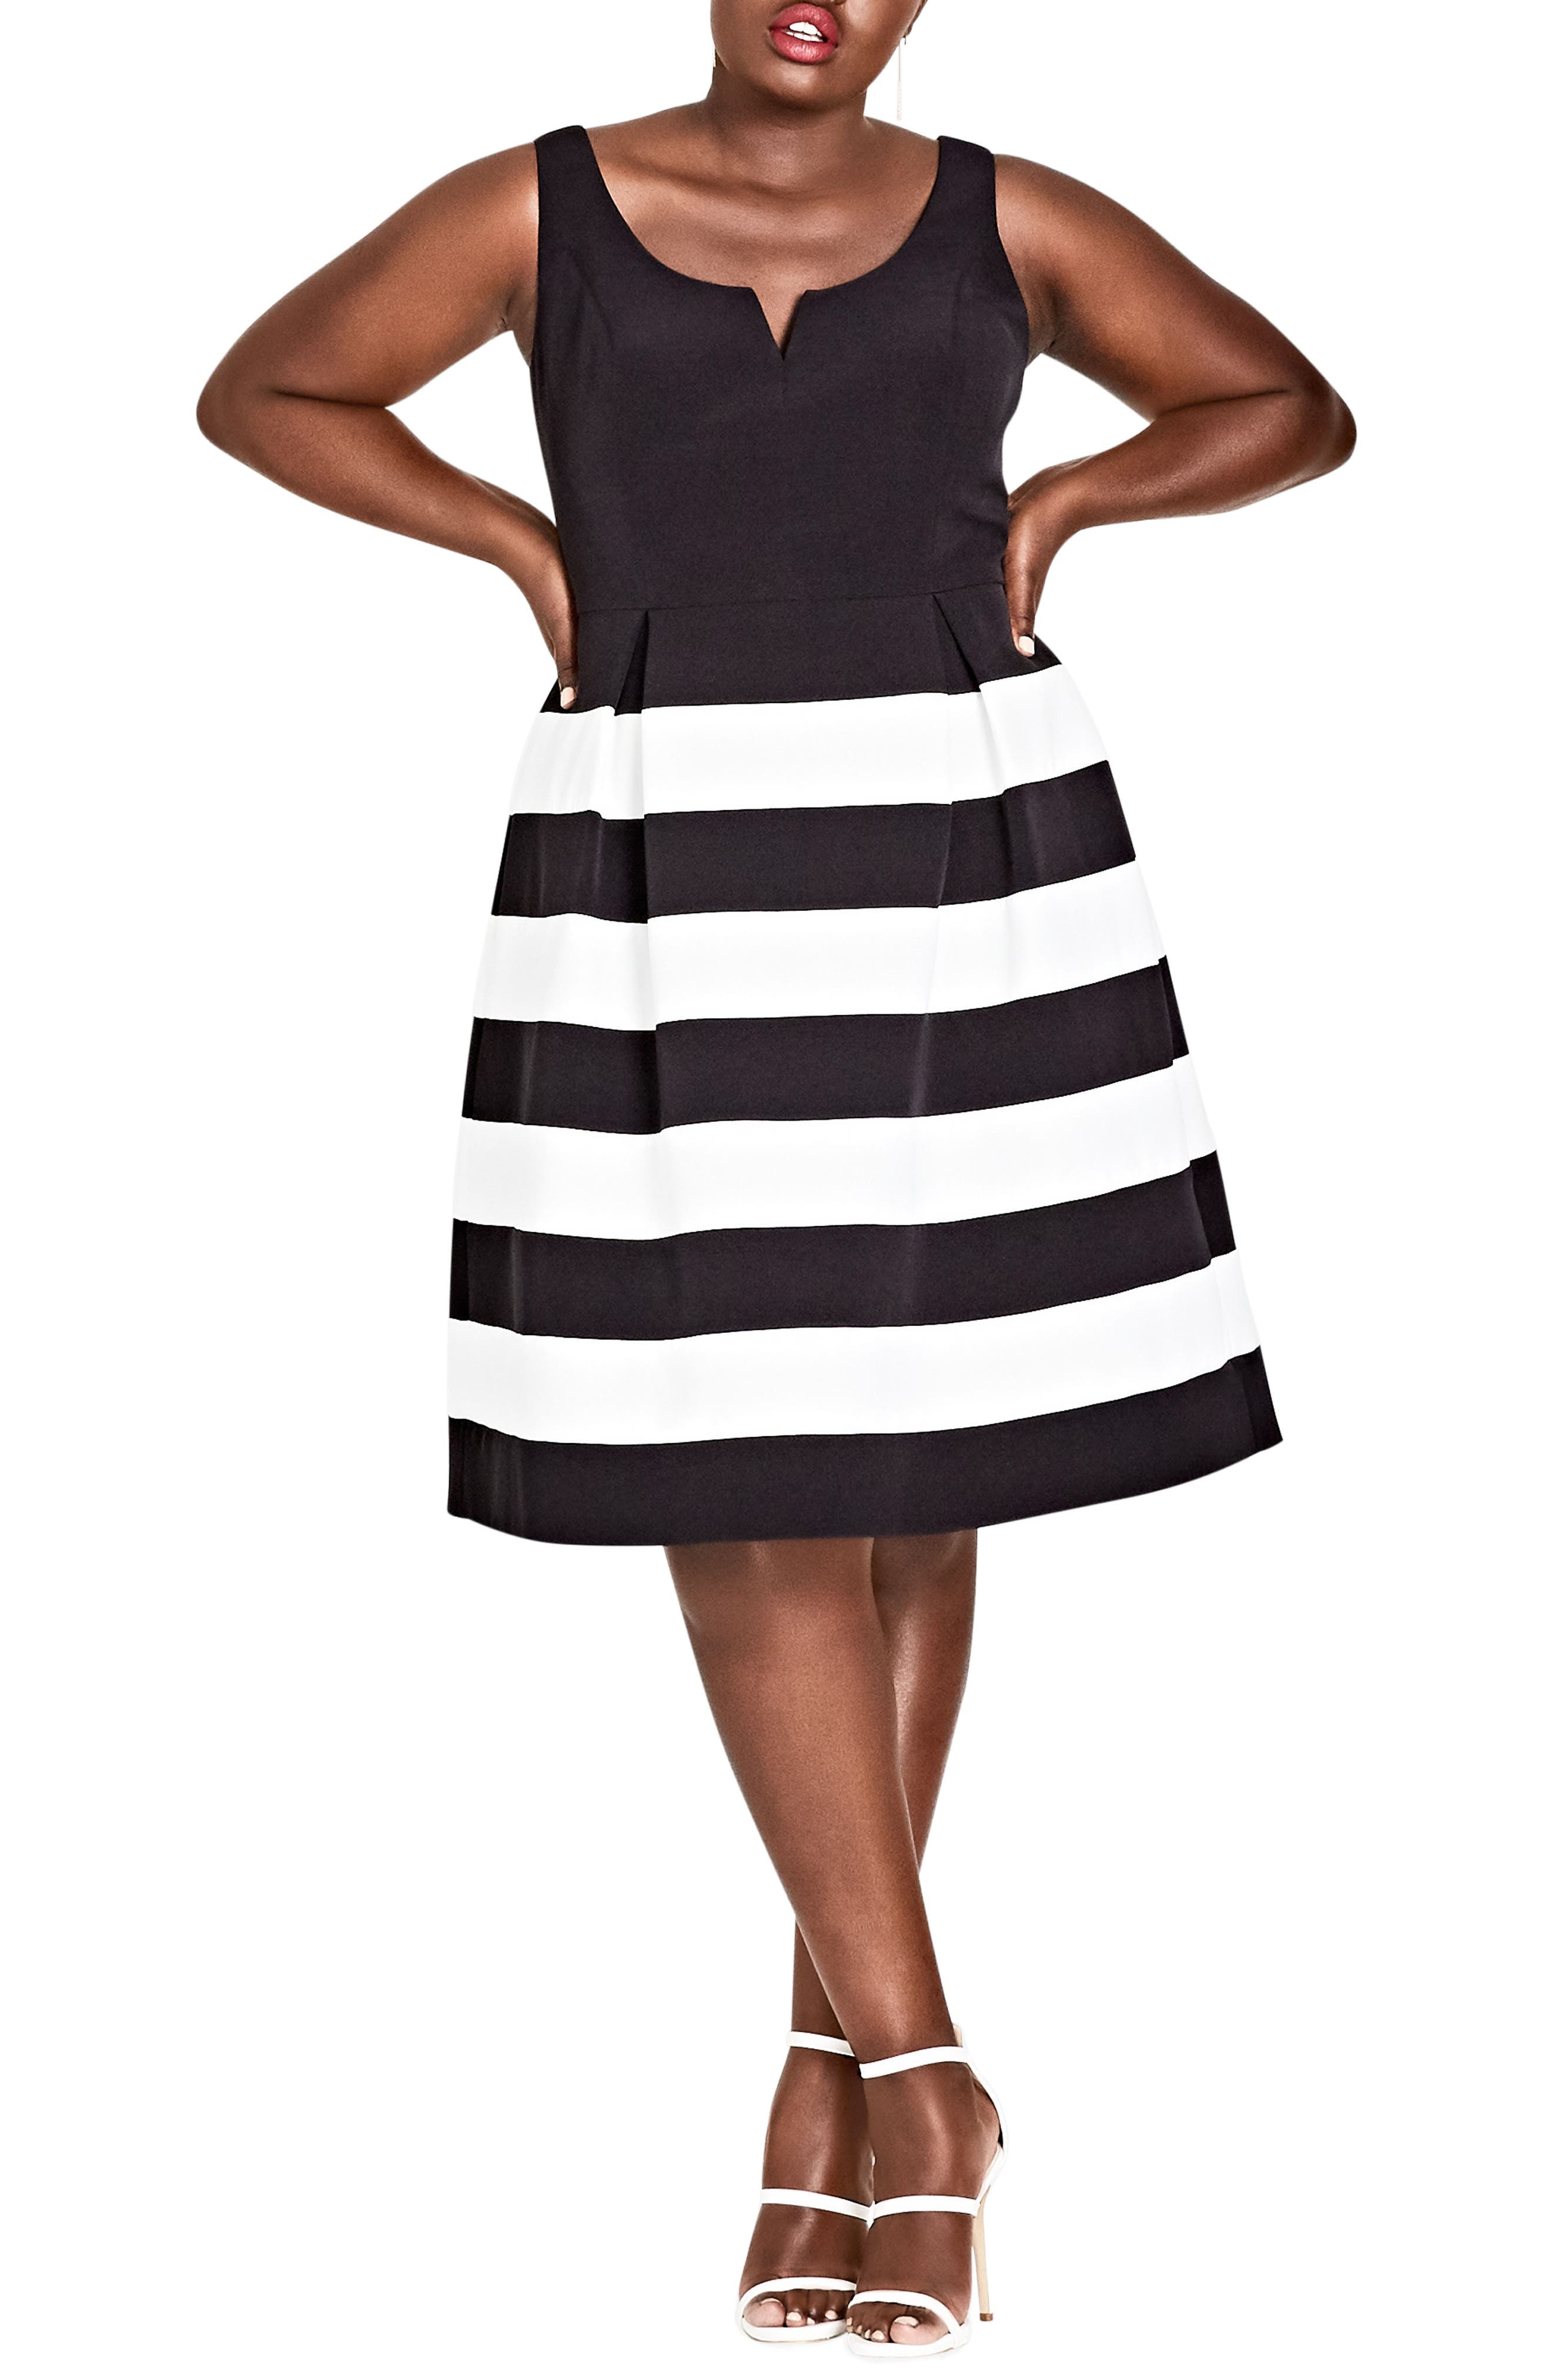 Alternate Image 1 Selected - City Chic Fair Lady Fit & Flare Dress (Plus Size)